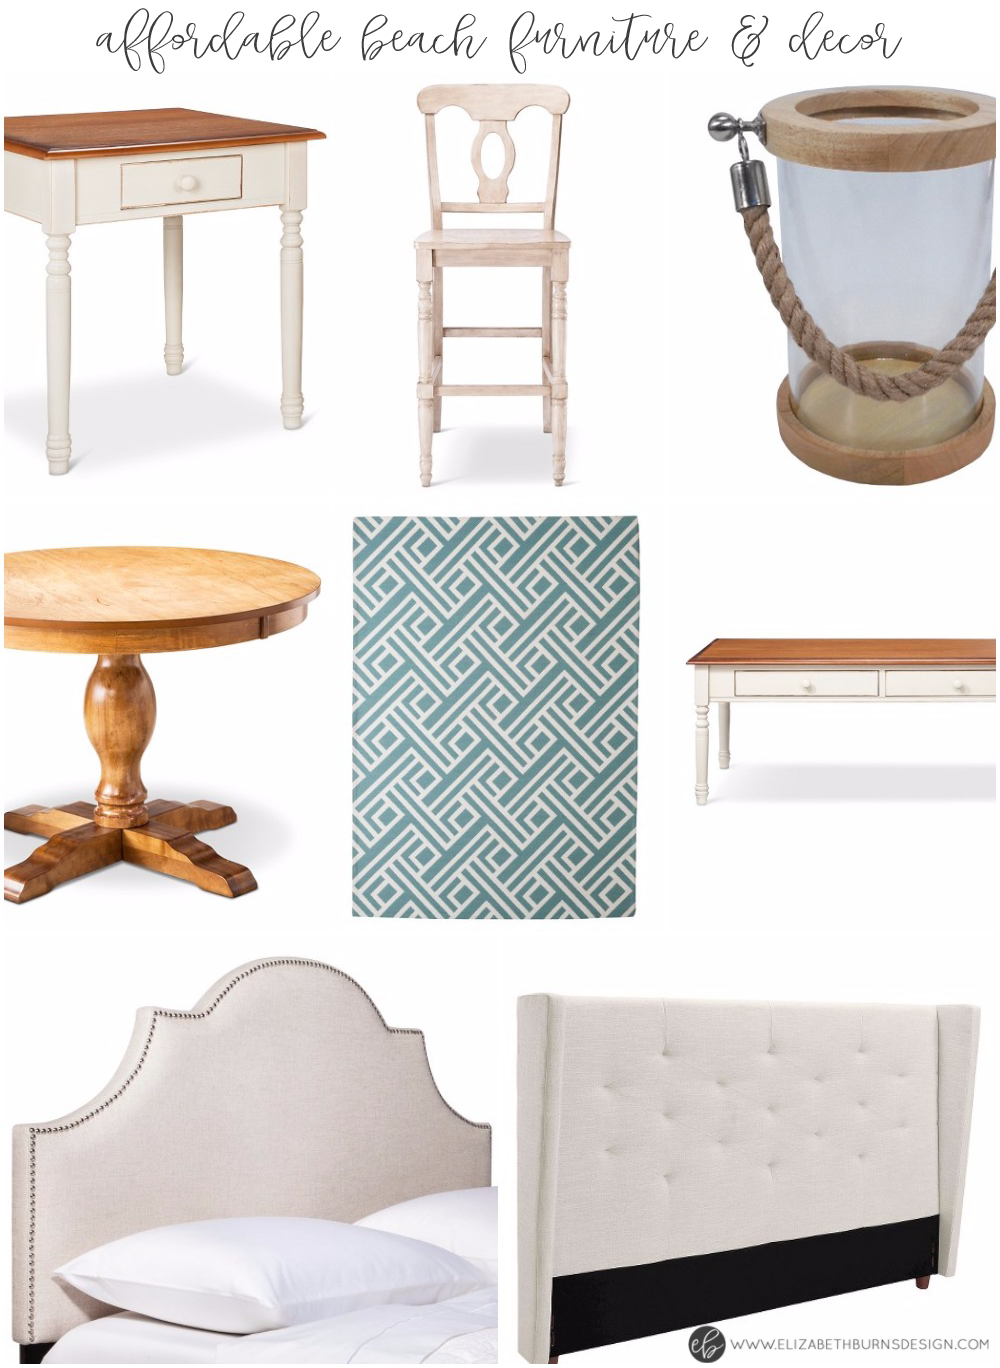 Affordable beach furniture decor at target elizabeth for Cheap furniture and decor